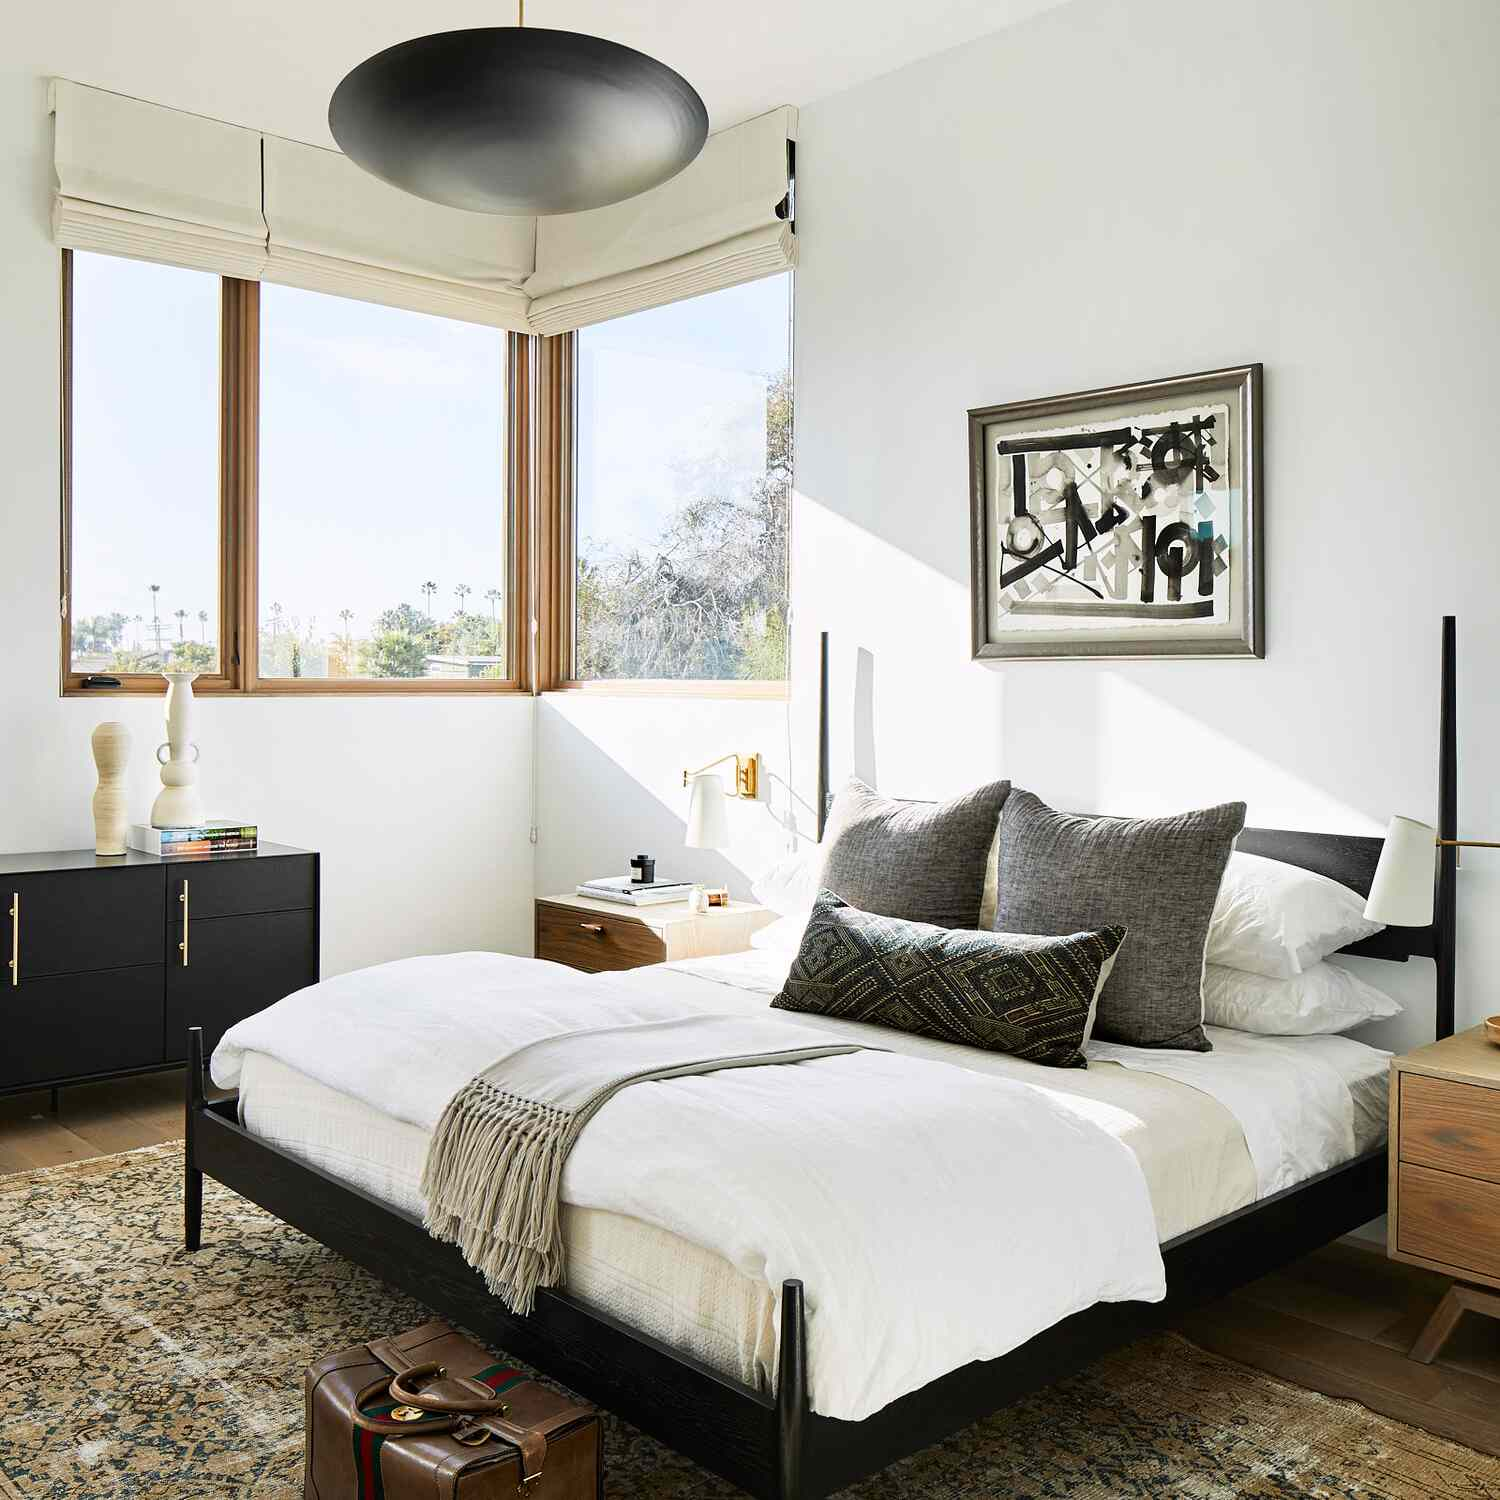 A modern bedroom with a bold black chandelier